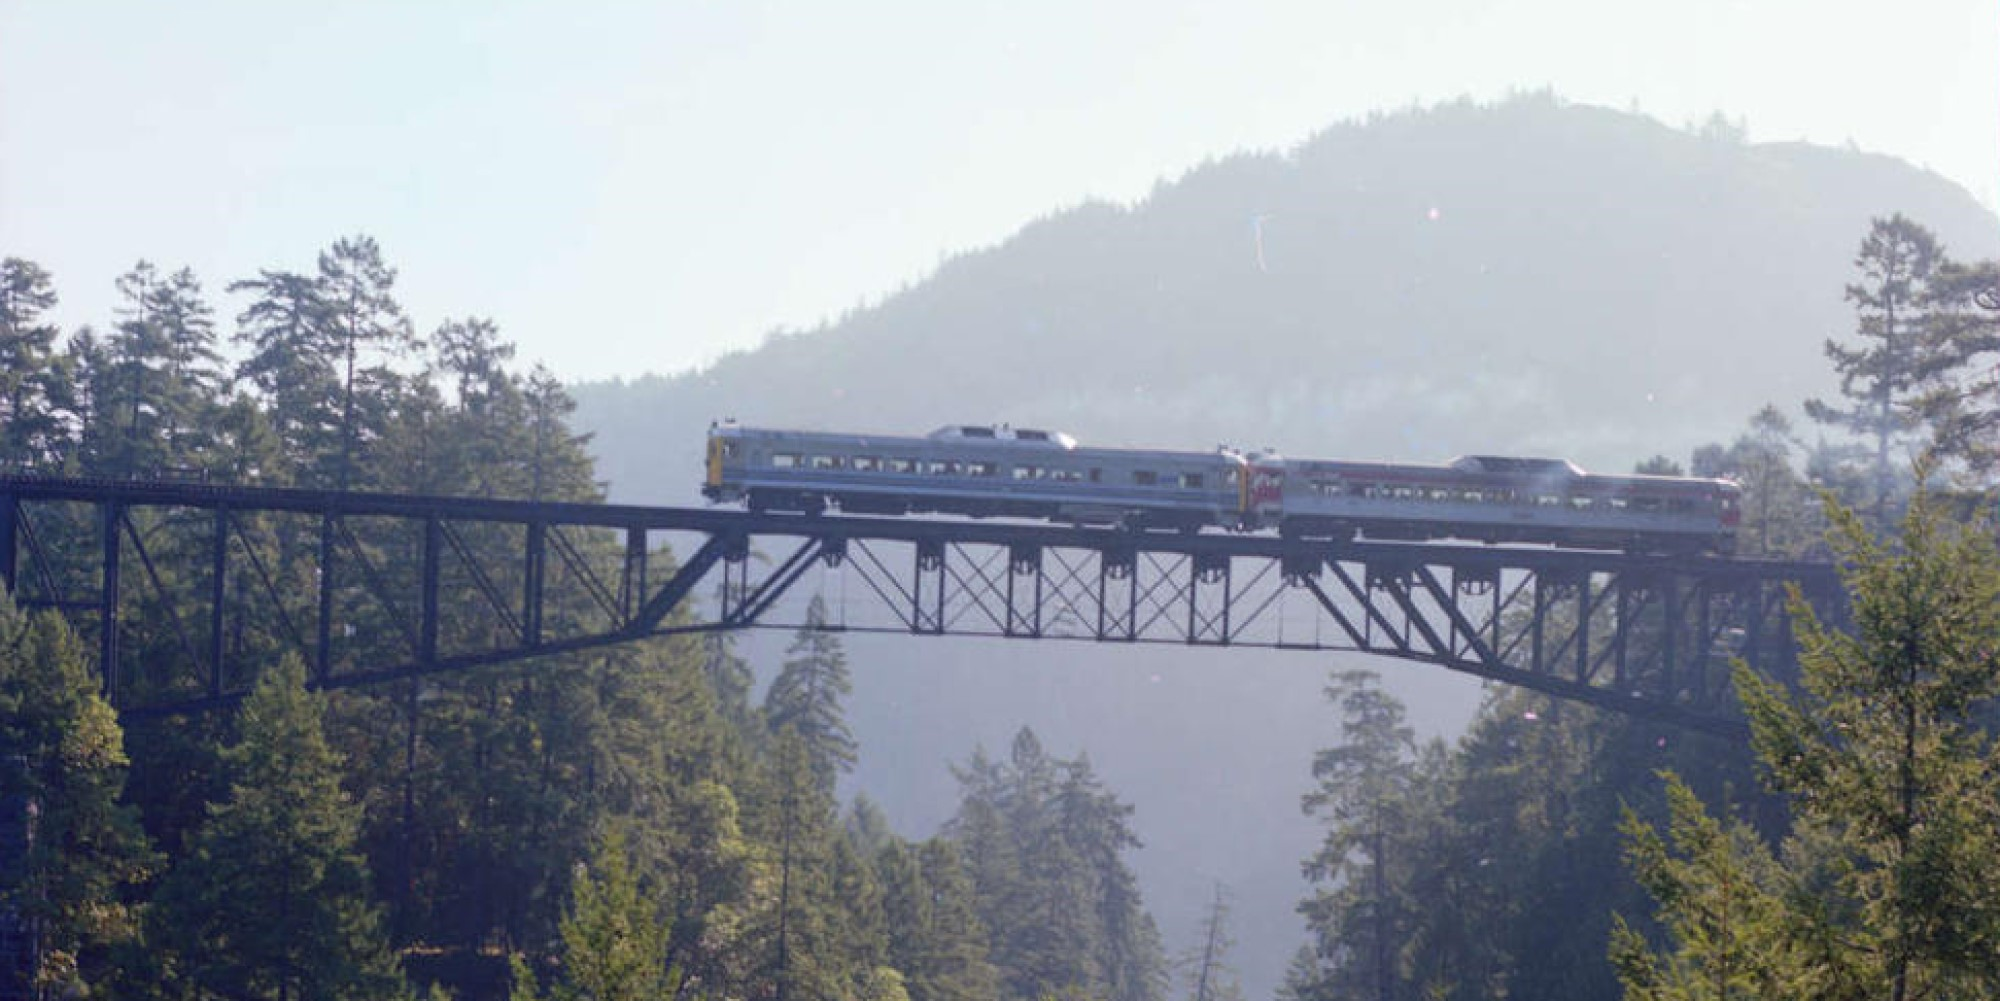 Restoring Island Rail Service Would Require More Than $700 million In Repairs: Report